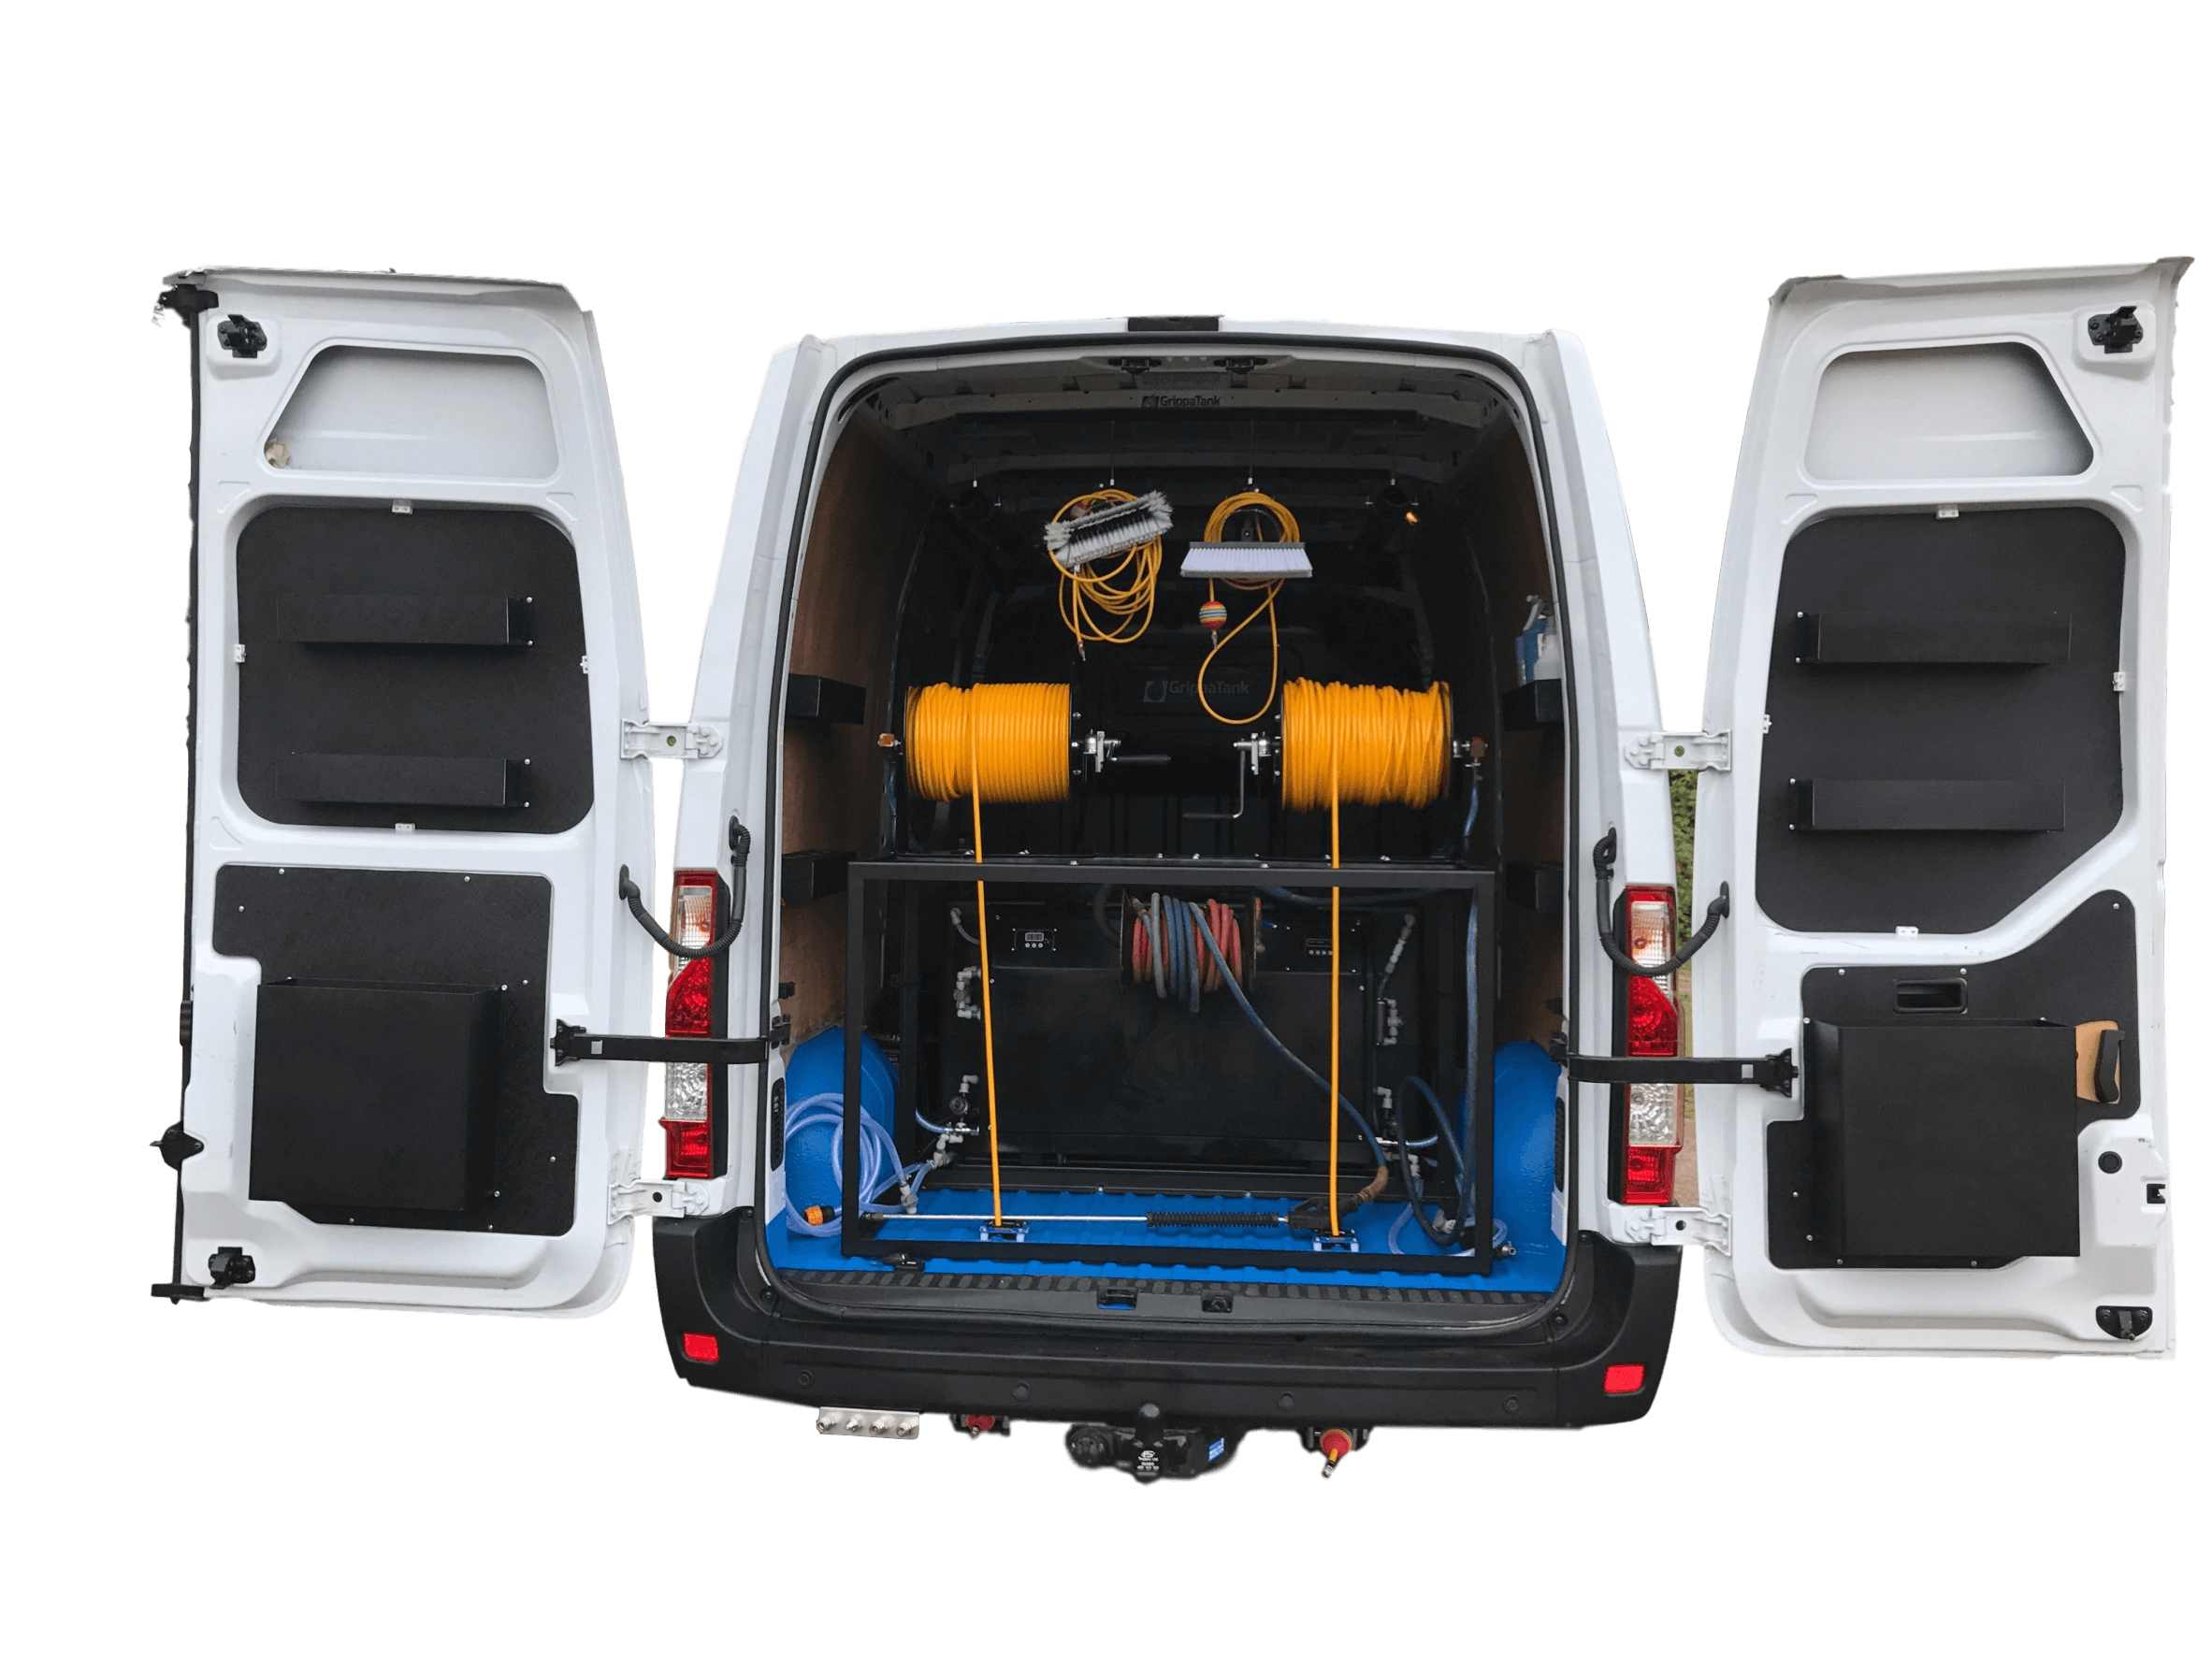 GrippaJET Vehicle Mount Pressure Washer Systems